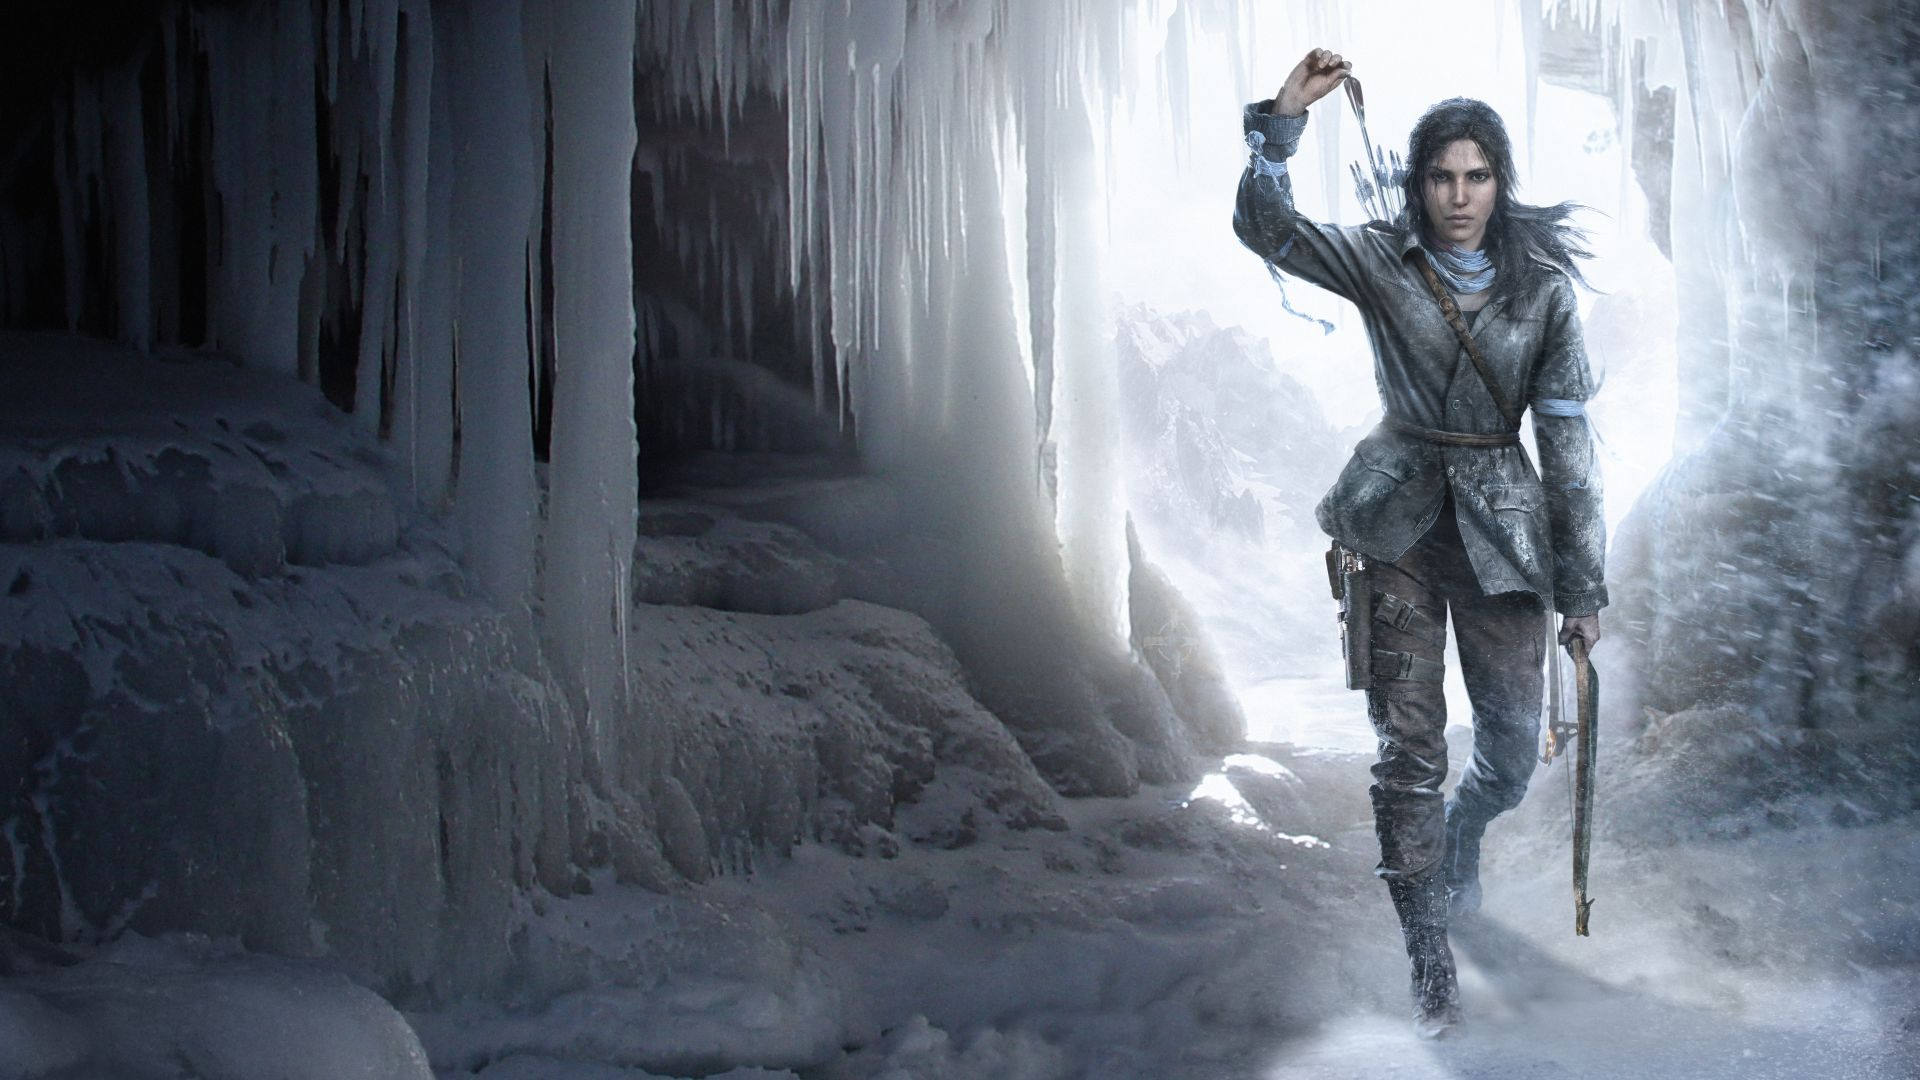 Rise of the Tomb Raider, Lara Croft, game, bow, ice, art, Best Games, sci-fi, PC, PS4, Xbox One (horizontal)